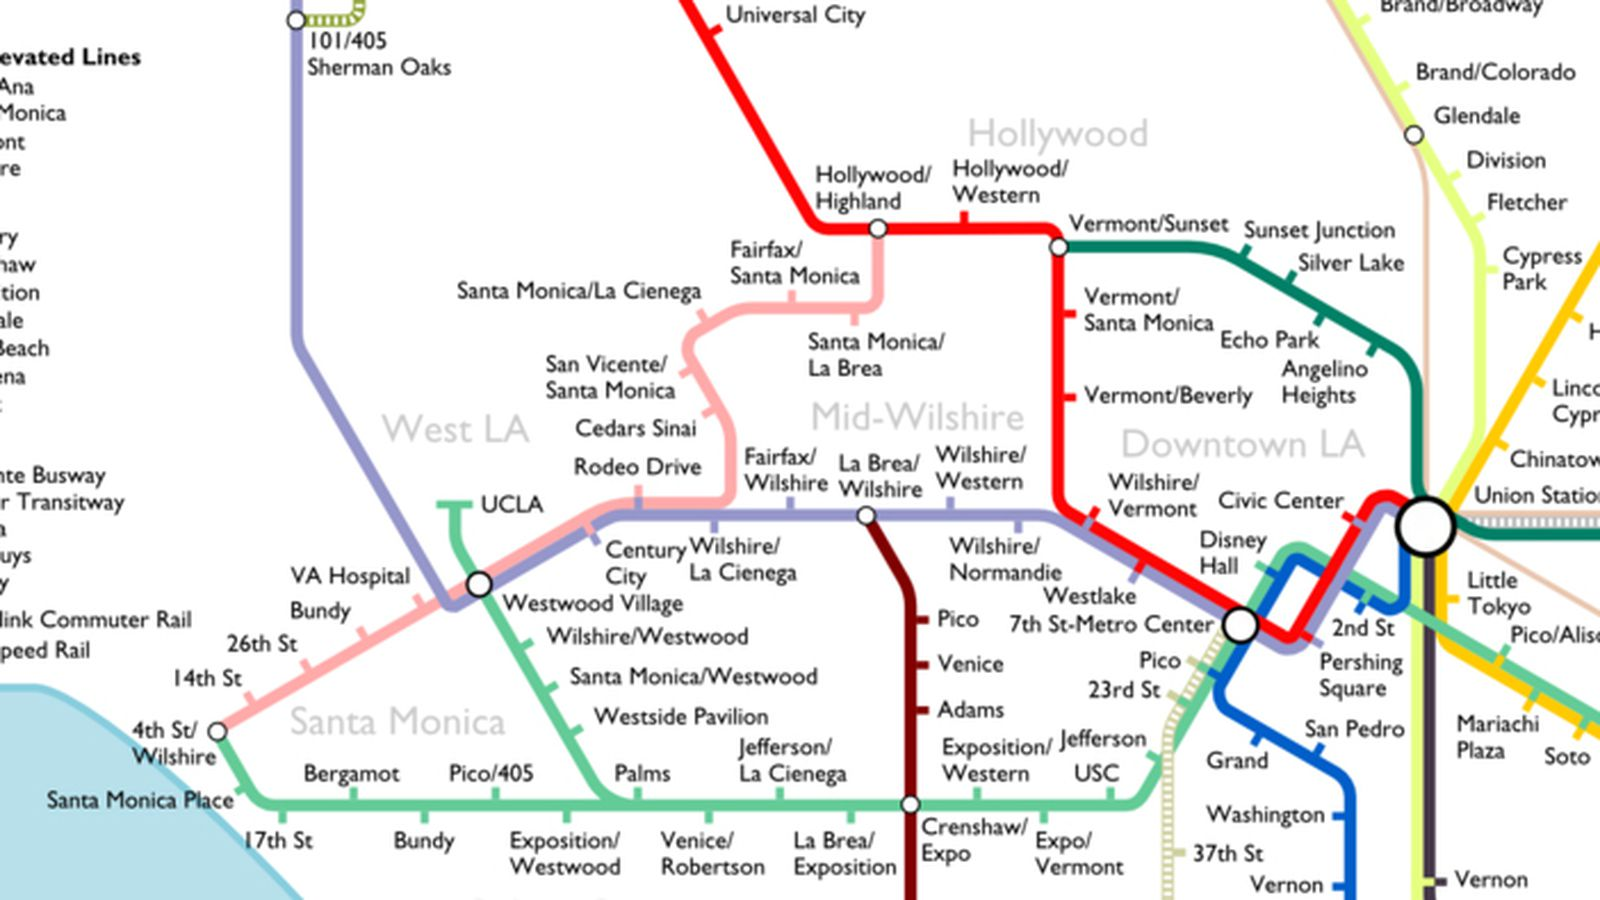 La Metro Rail Map The Most Optimistic Possible LA Metro Rail Map of 2040   Curbed LA